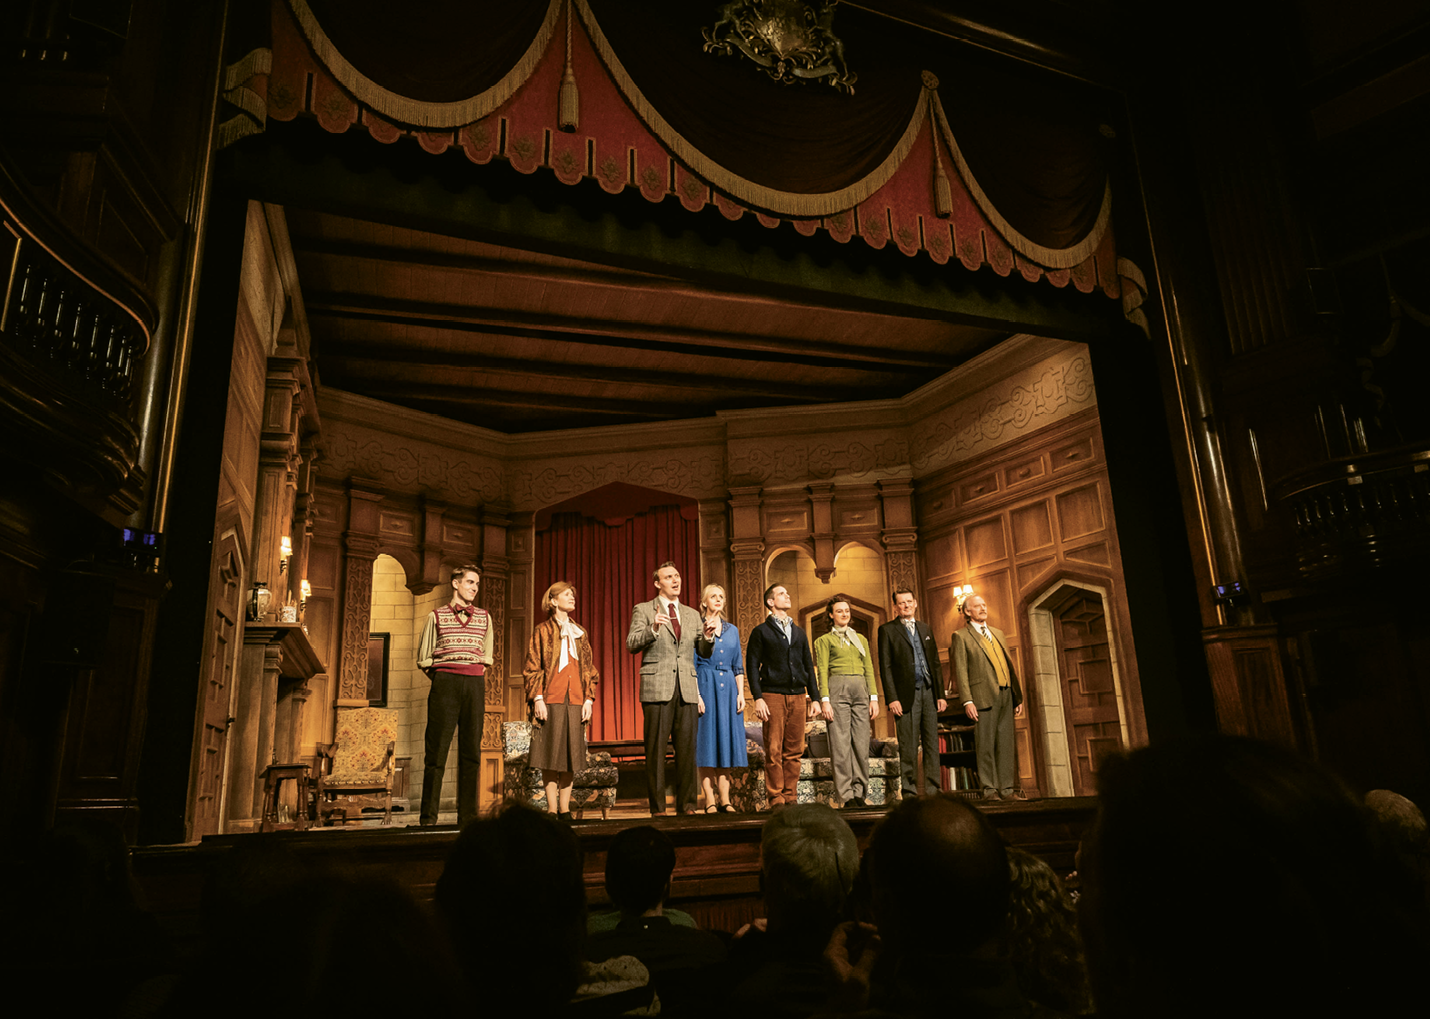 The 27,788th performance of The Mousetrap at St. Martin's Theatre